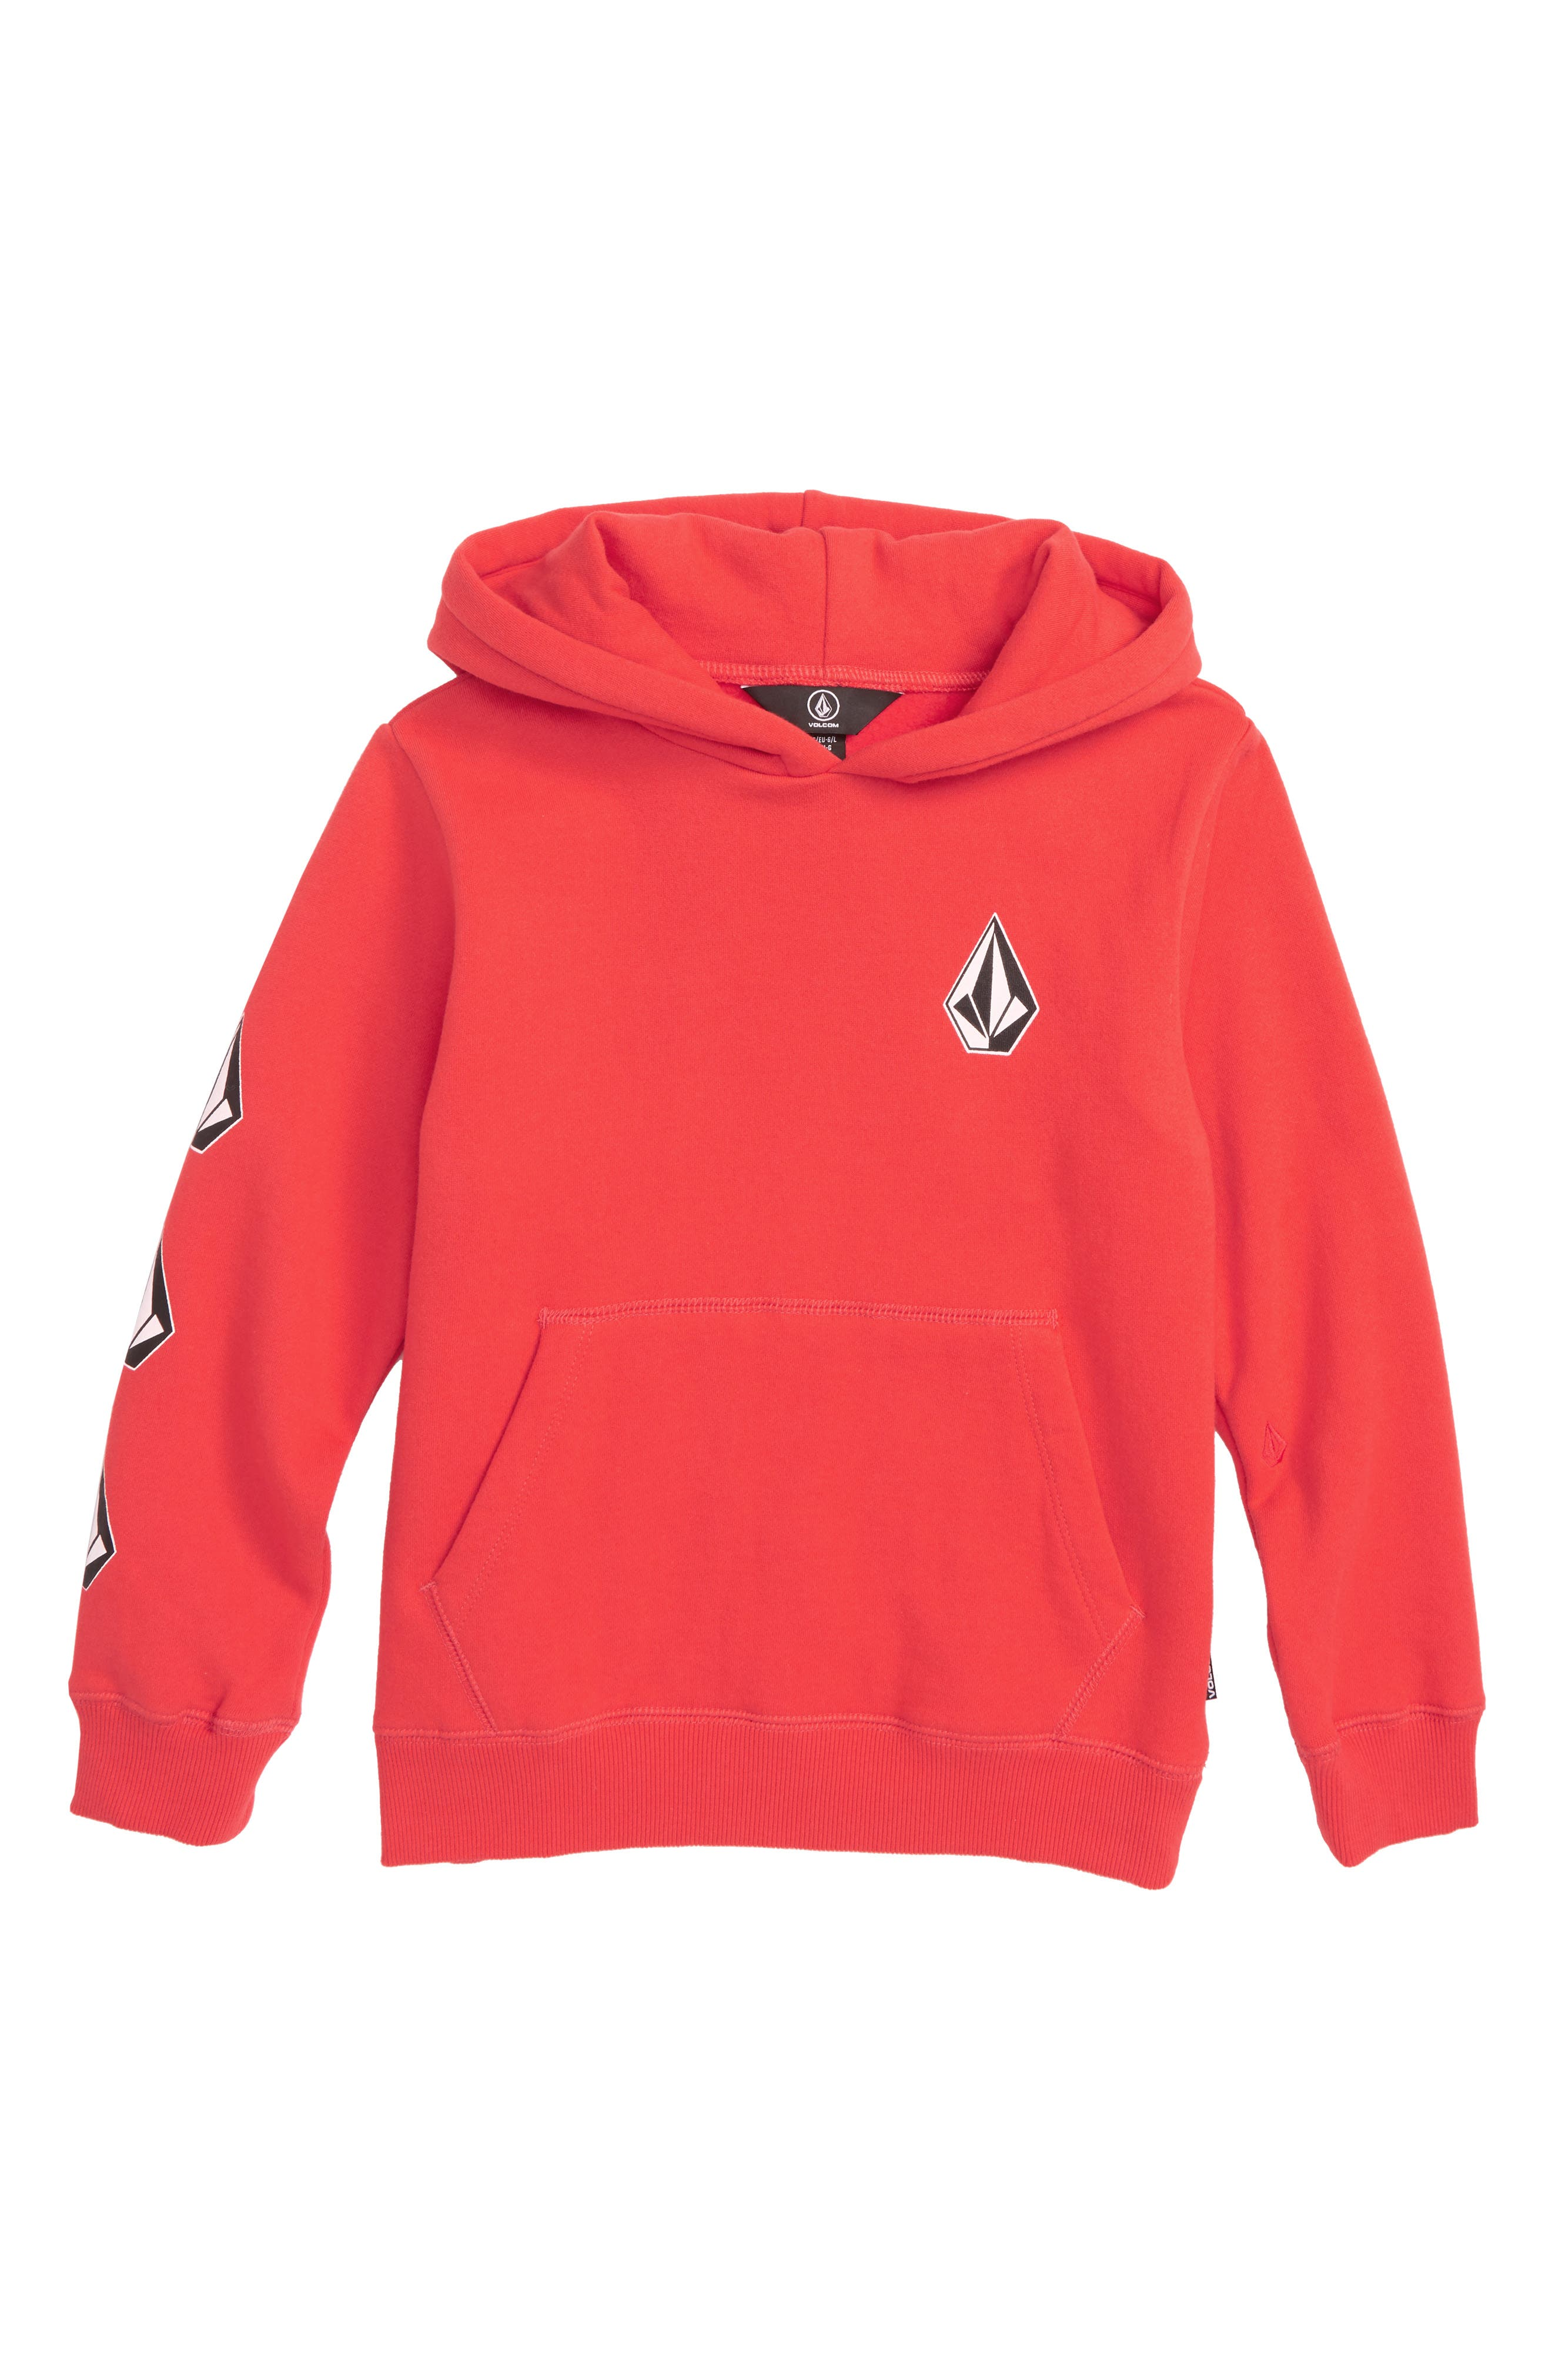 Deadly Stones Hoodie,                             Main thumbnail 1, color,                             SPARK RED